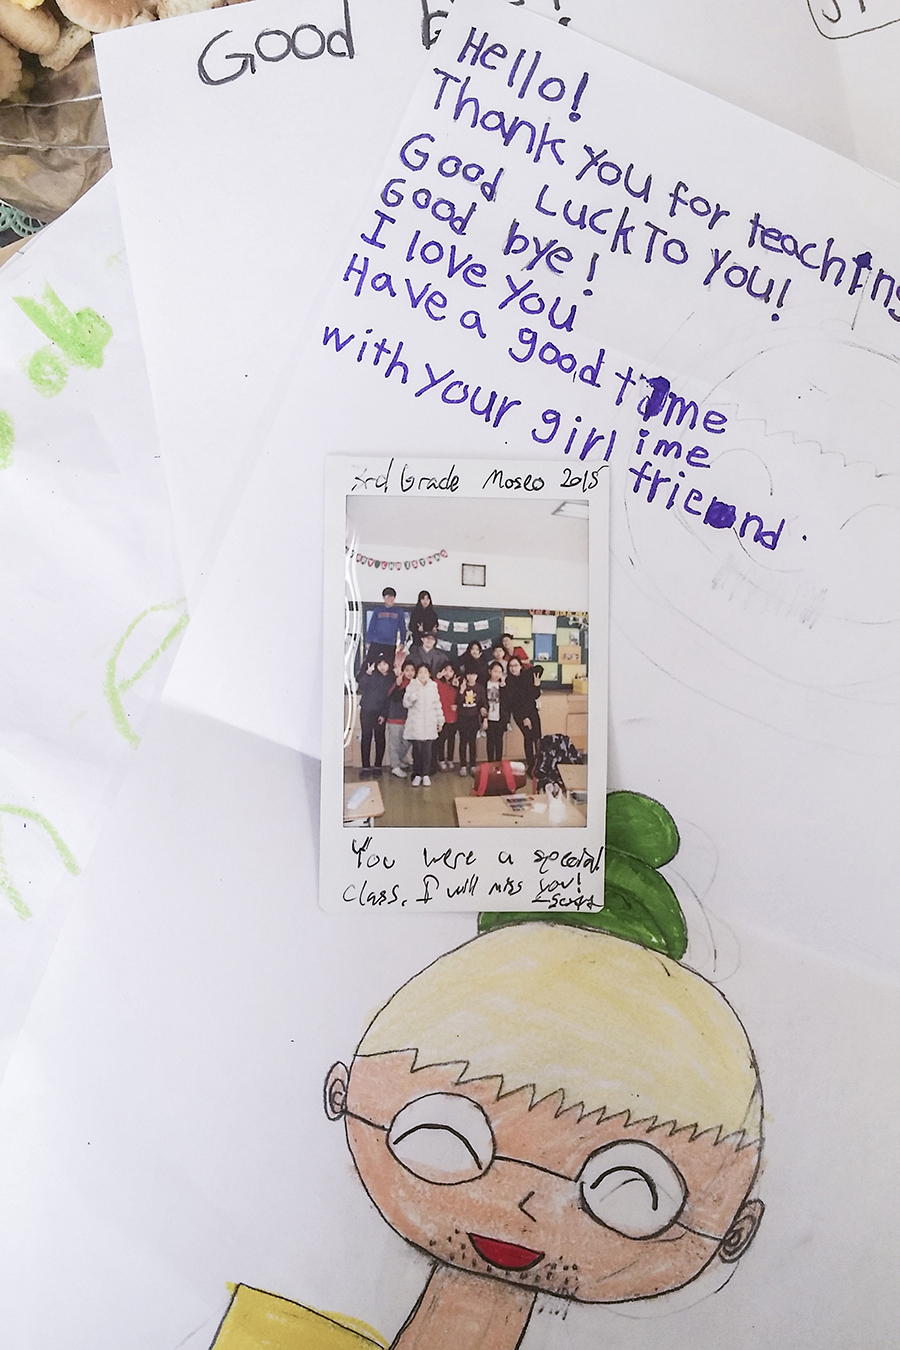 Farewell notes from elementary kids in Sangju, South Korea.